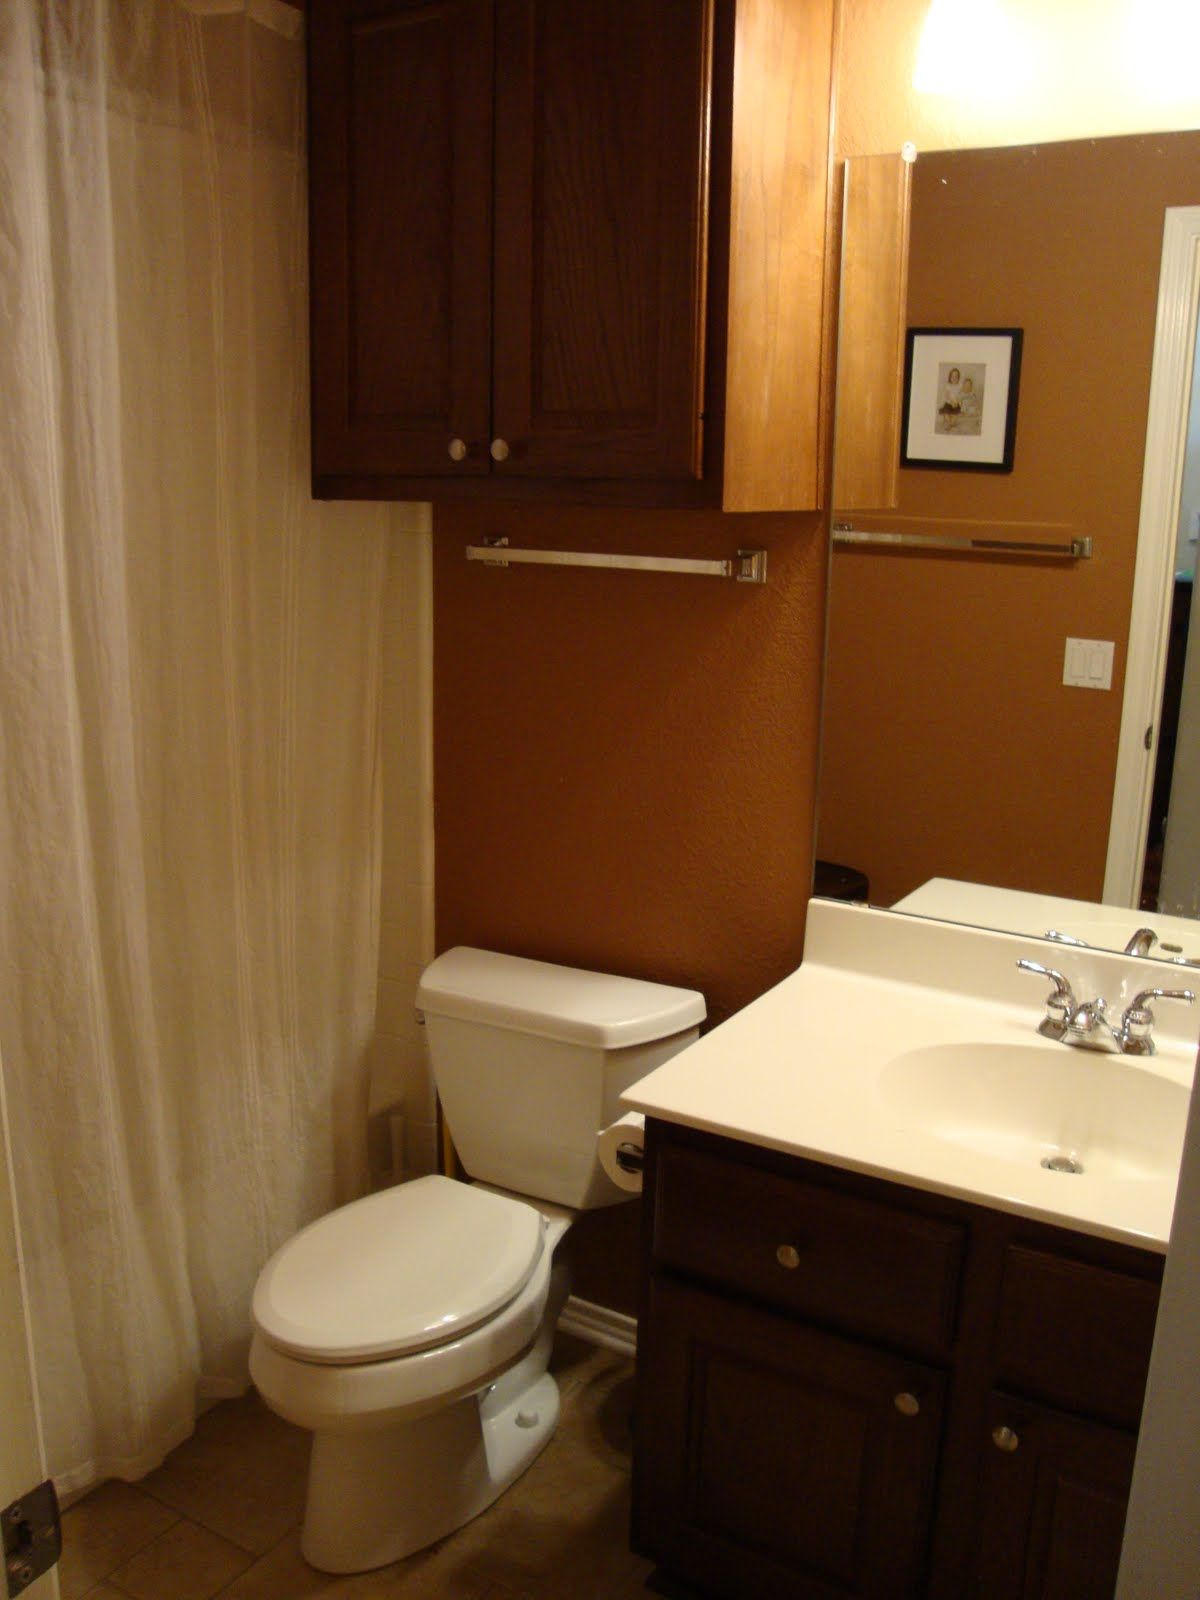 Bathroom Small Decorating Ideas Tight Budget Cabin Entry For Bathrooms Plan Your